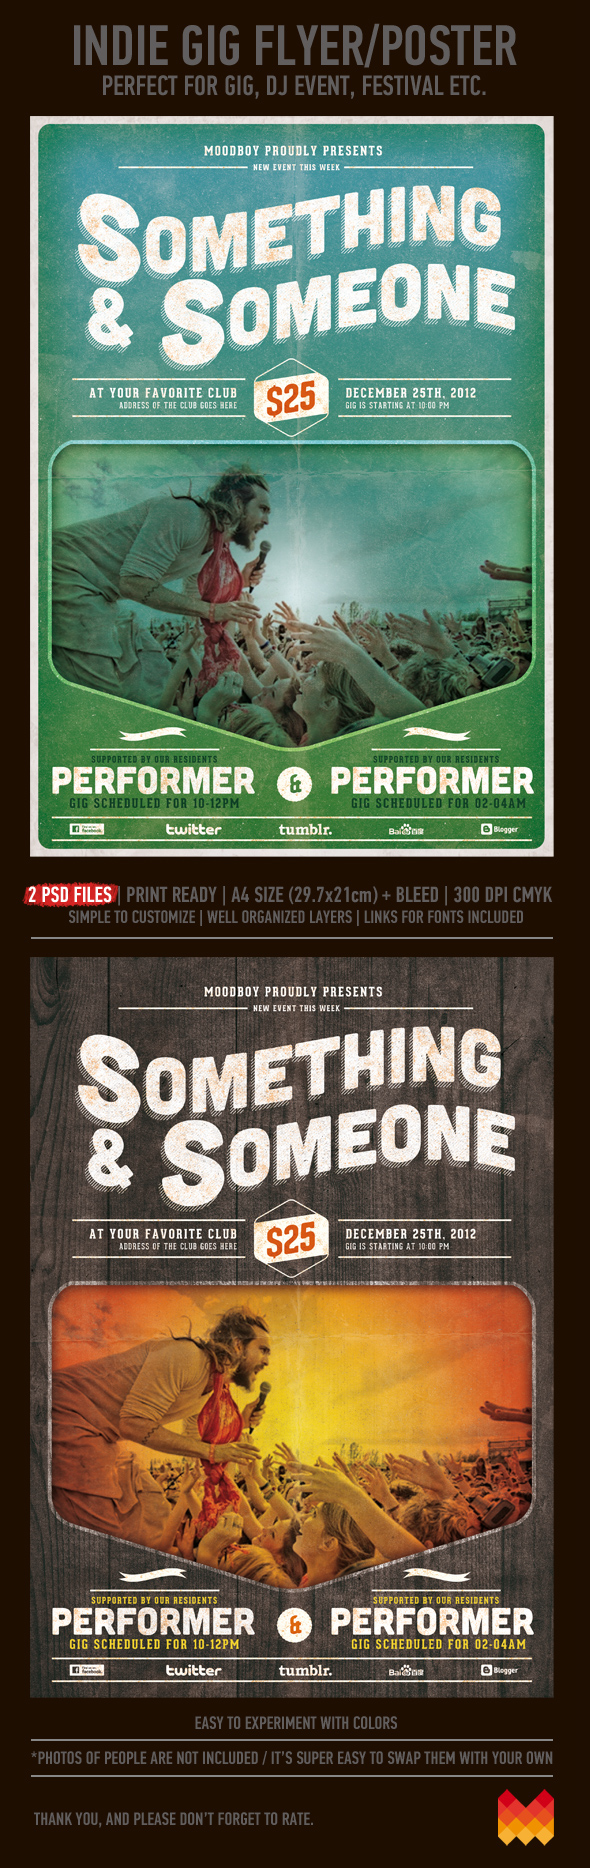 indie gig flyer poster template on behance